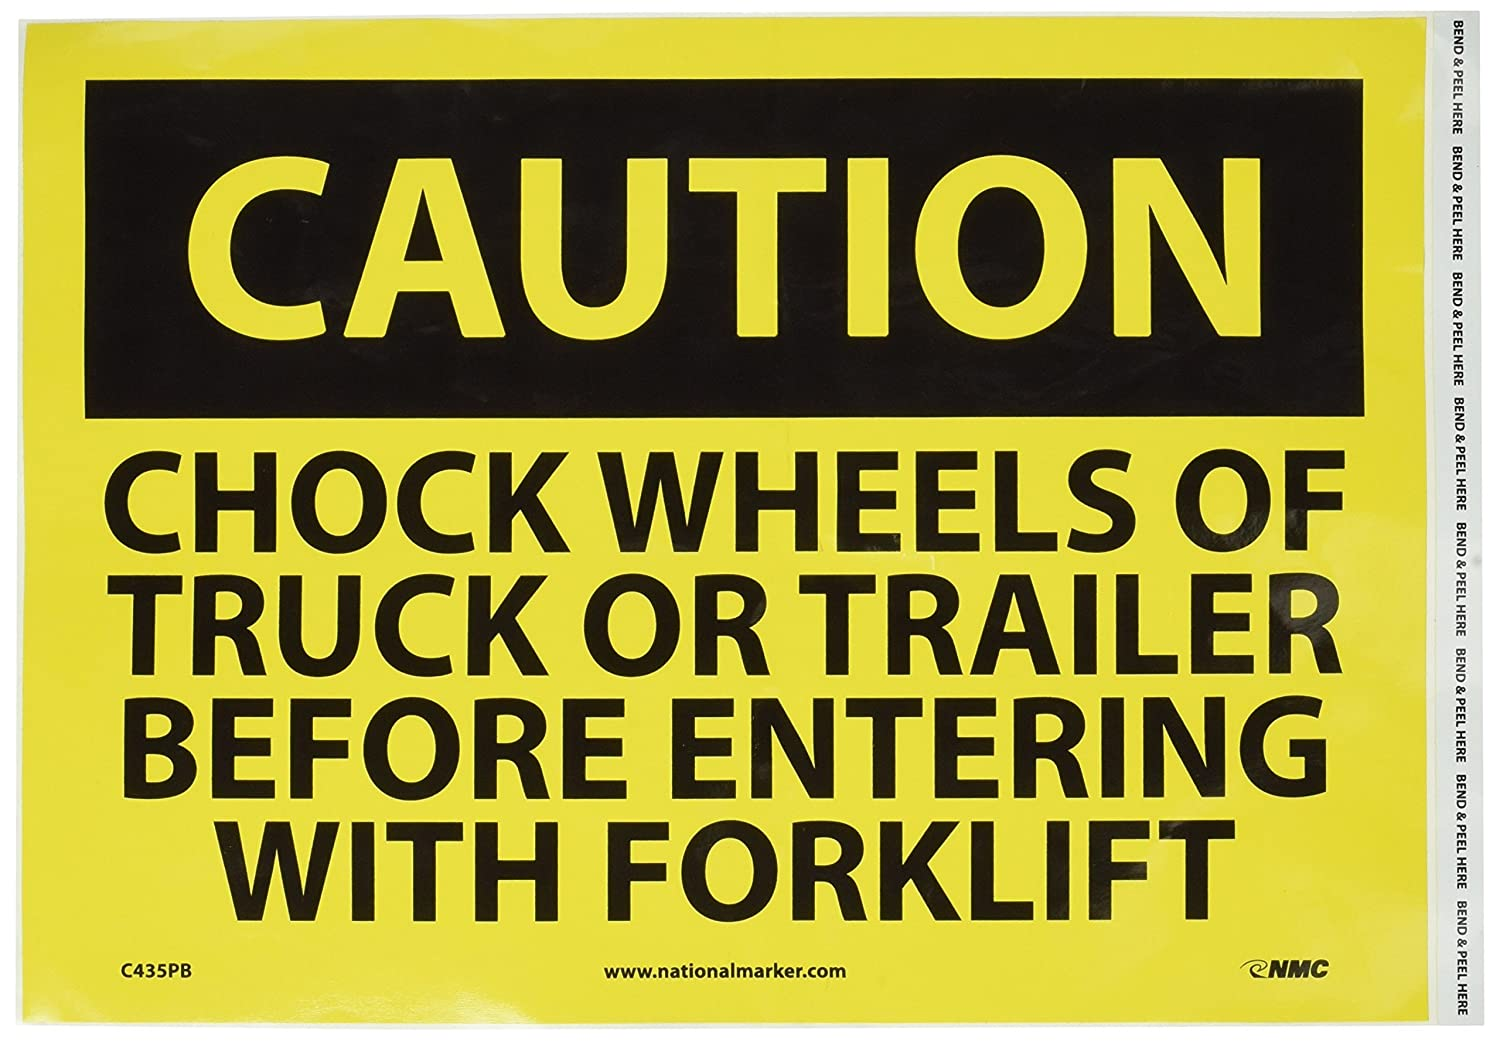 NMC C435RB OSHA Sign, Legend'CAUTION - CHOCK WHEELS OF TRUCK OR TRAILER BEFORE ENTERING WITH FORKLIFT', 14' Length x 10' Height, Rigid Plastic, Black on Yellow LegendCAUTION - CHOCK WHEELS OF TRUCK OR TRAILER BEFORE ENTERING WITH FORKLIFT NMCC435RB